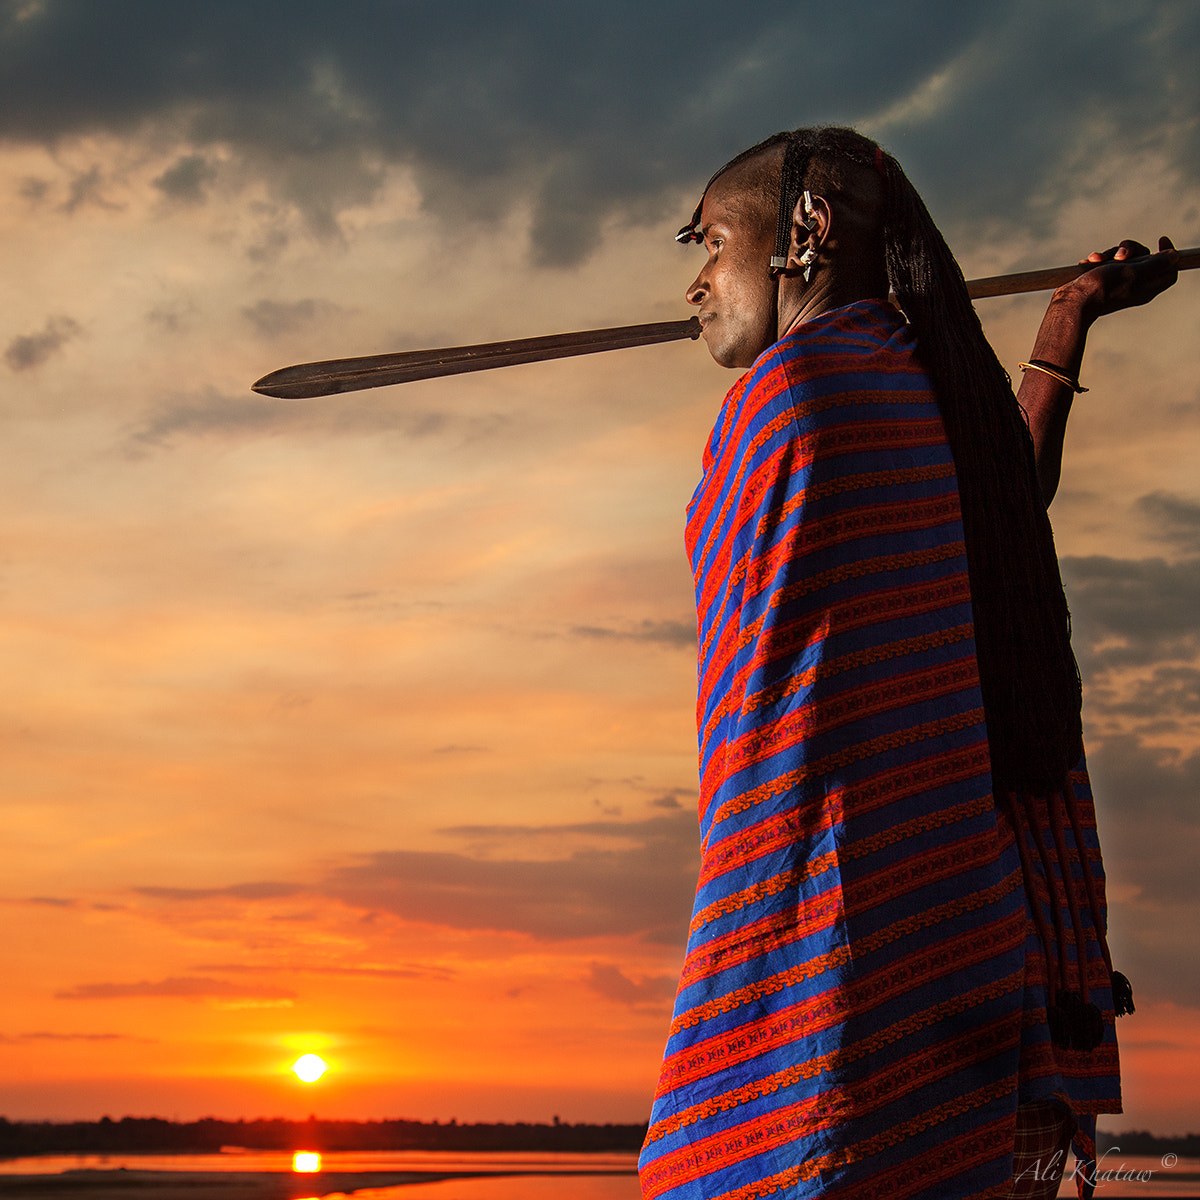 Photograph Masai Warrior by Ali Khataw on 500px